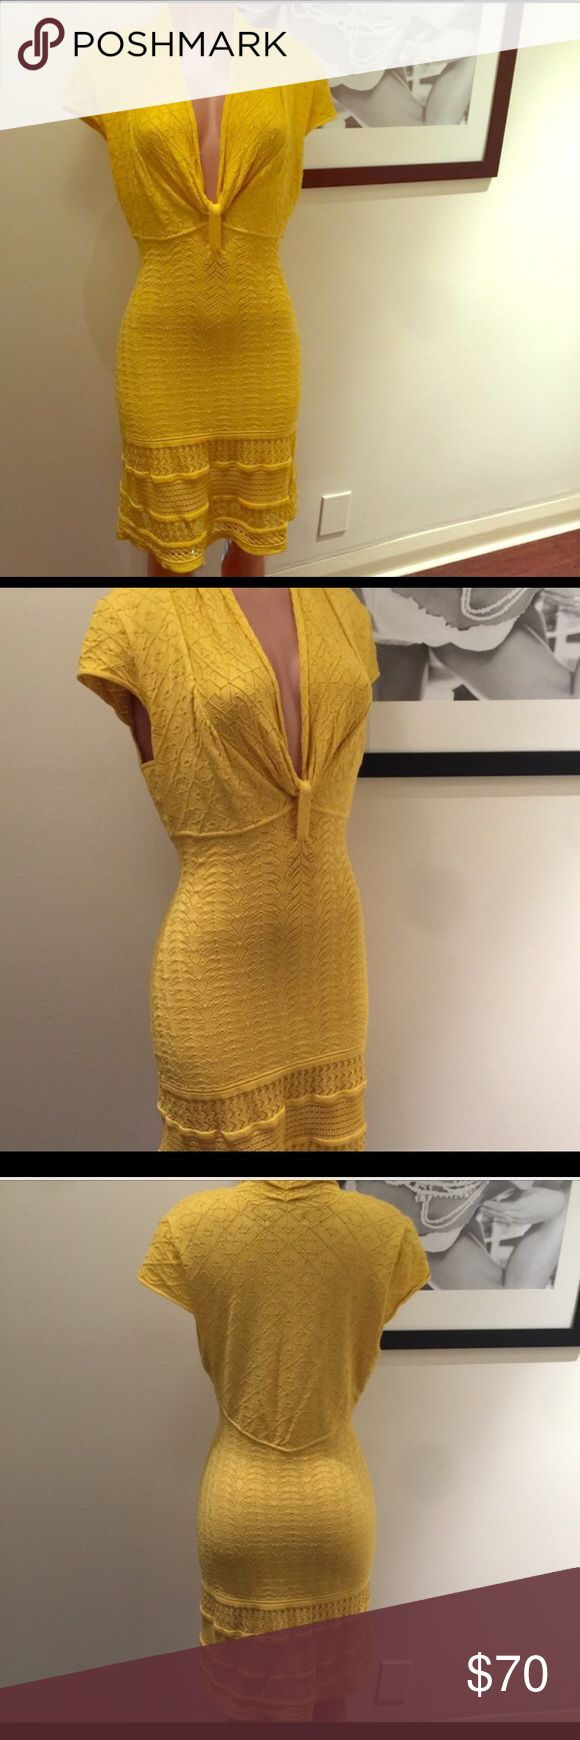 Amazing Catherine Malandrino dress Catherine Malandrino dress. NWOT absolutely amazing yellow sweater dress.  Makes your bod look amazing and such a great color. Great for spring. Catherine Malandrino Dresses